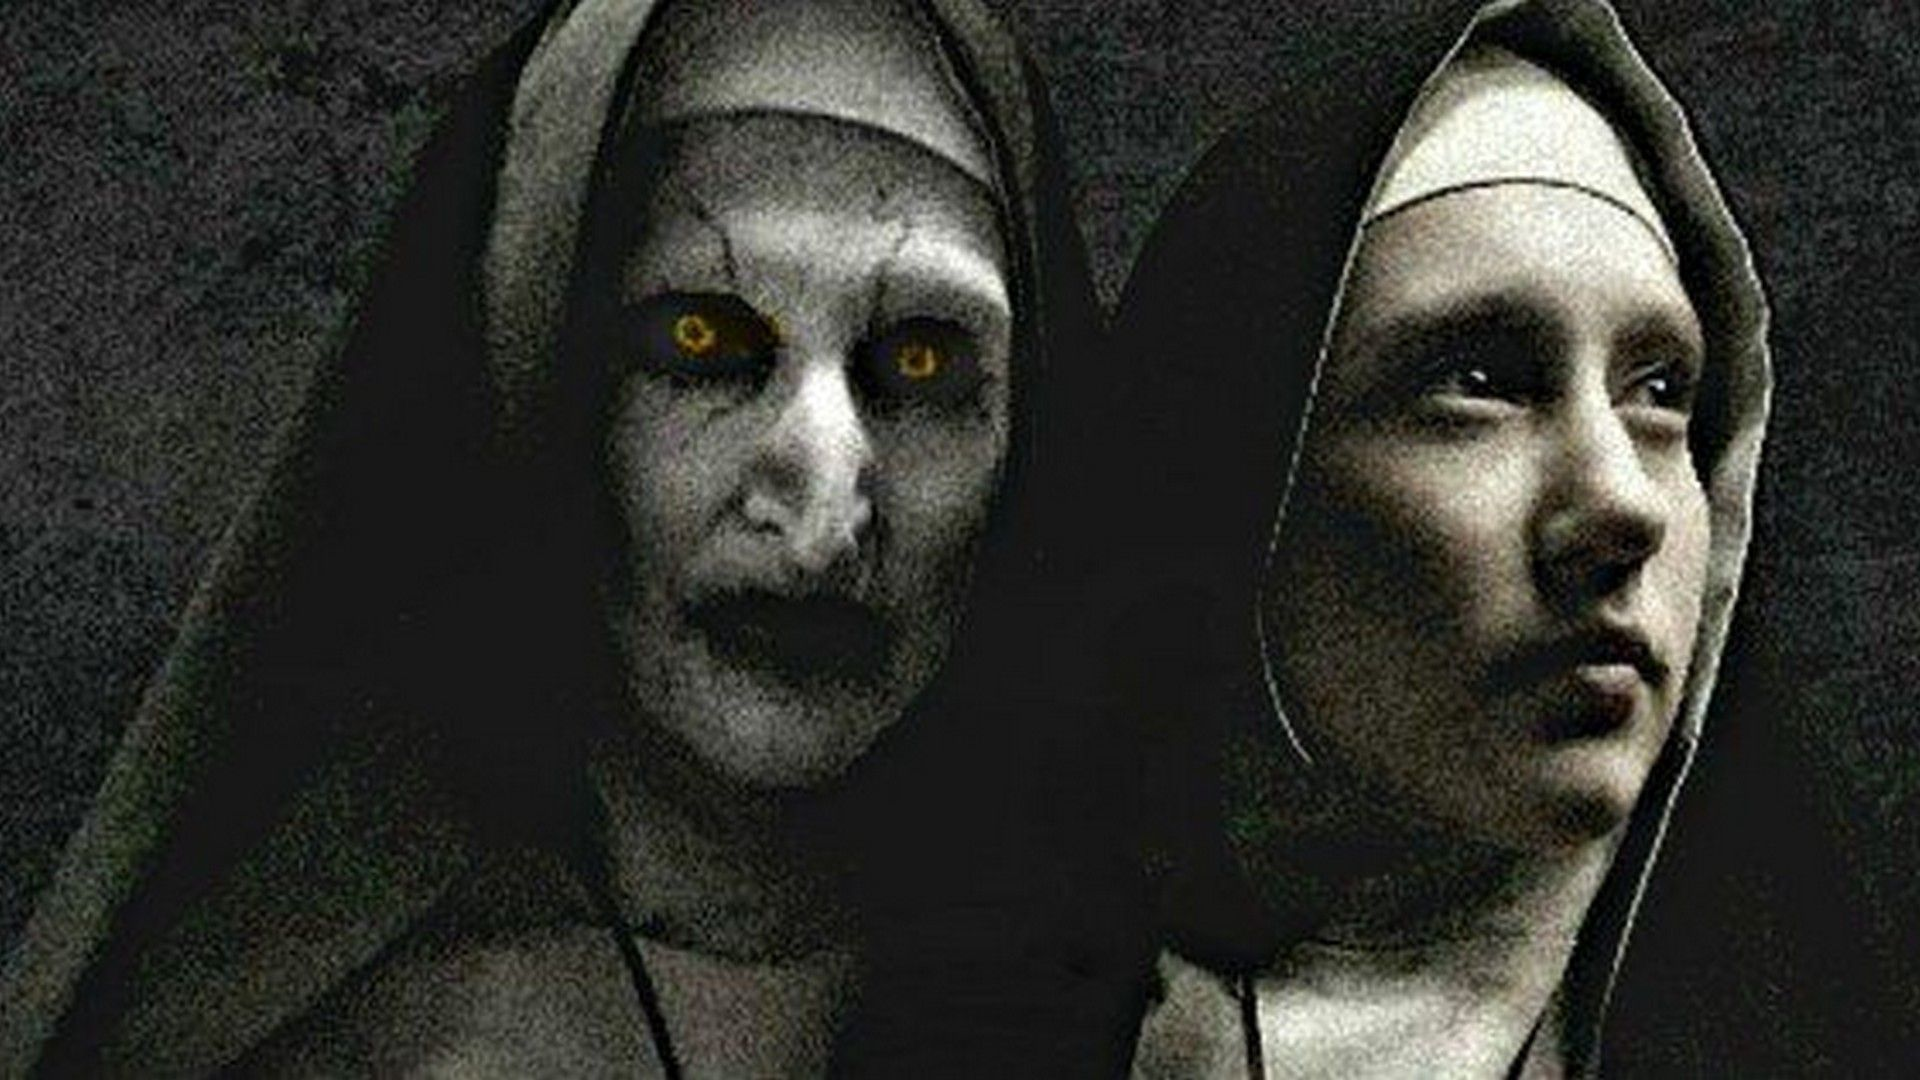 Wallpaper The Nun Valak Desktop Best Hd Wallpapers In 2019